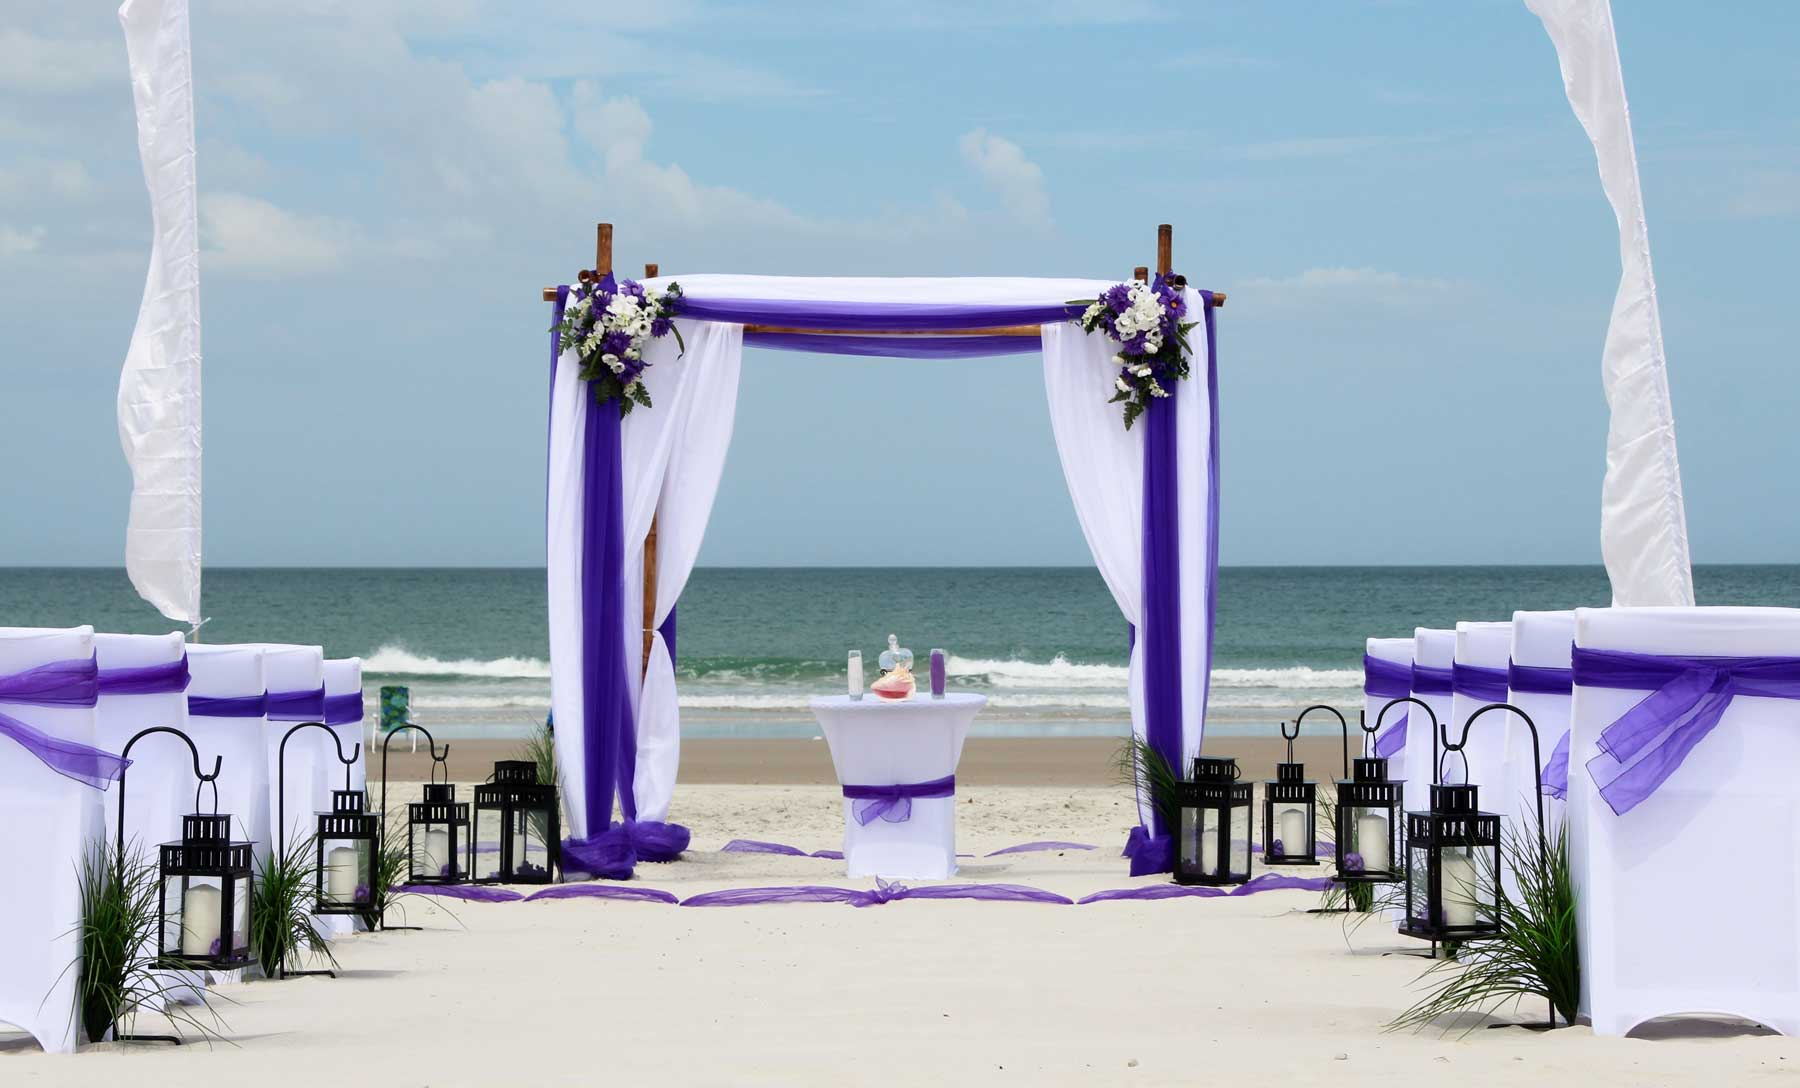 Affordable Daytona Beach Weddings: Daytona Beach Is Rich In History, Beauty And Fun